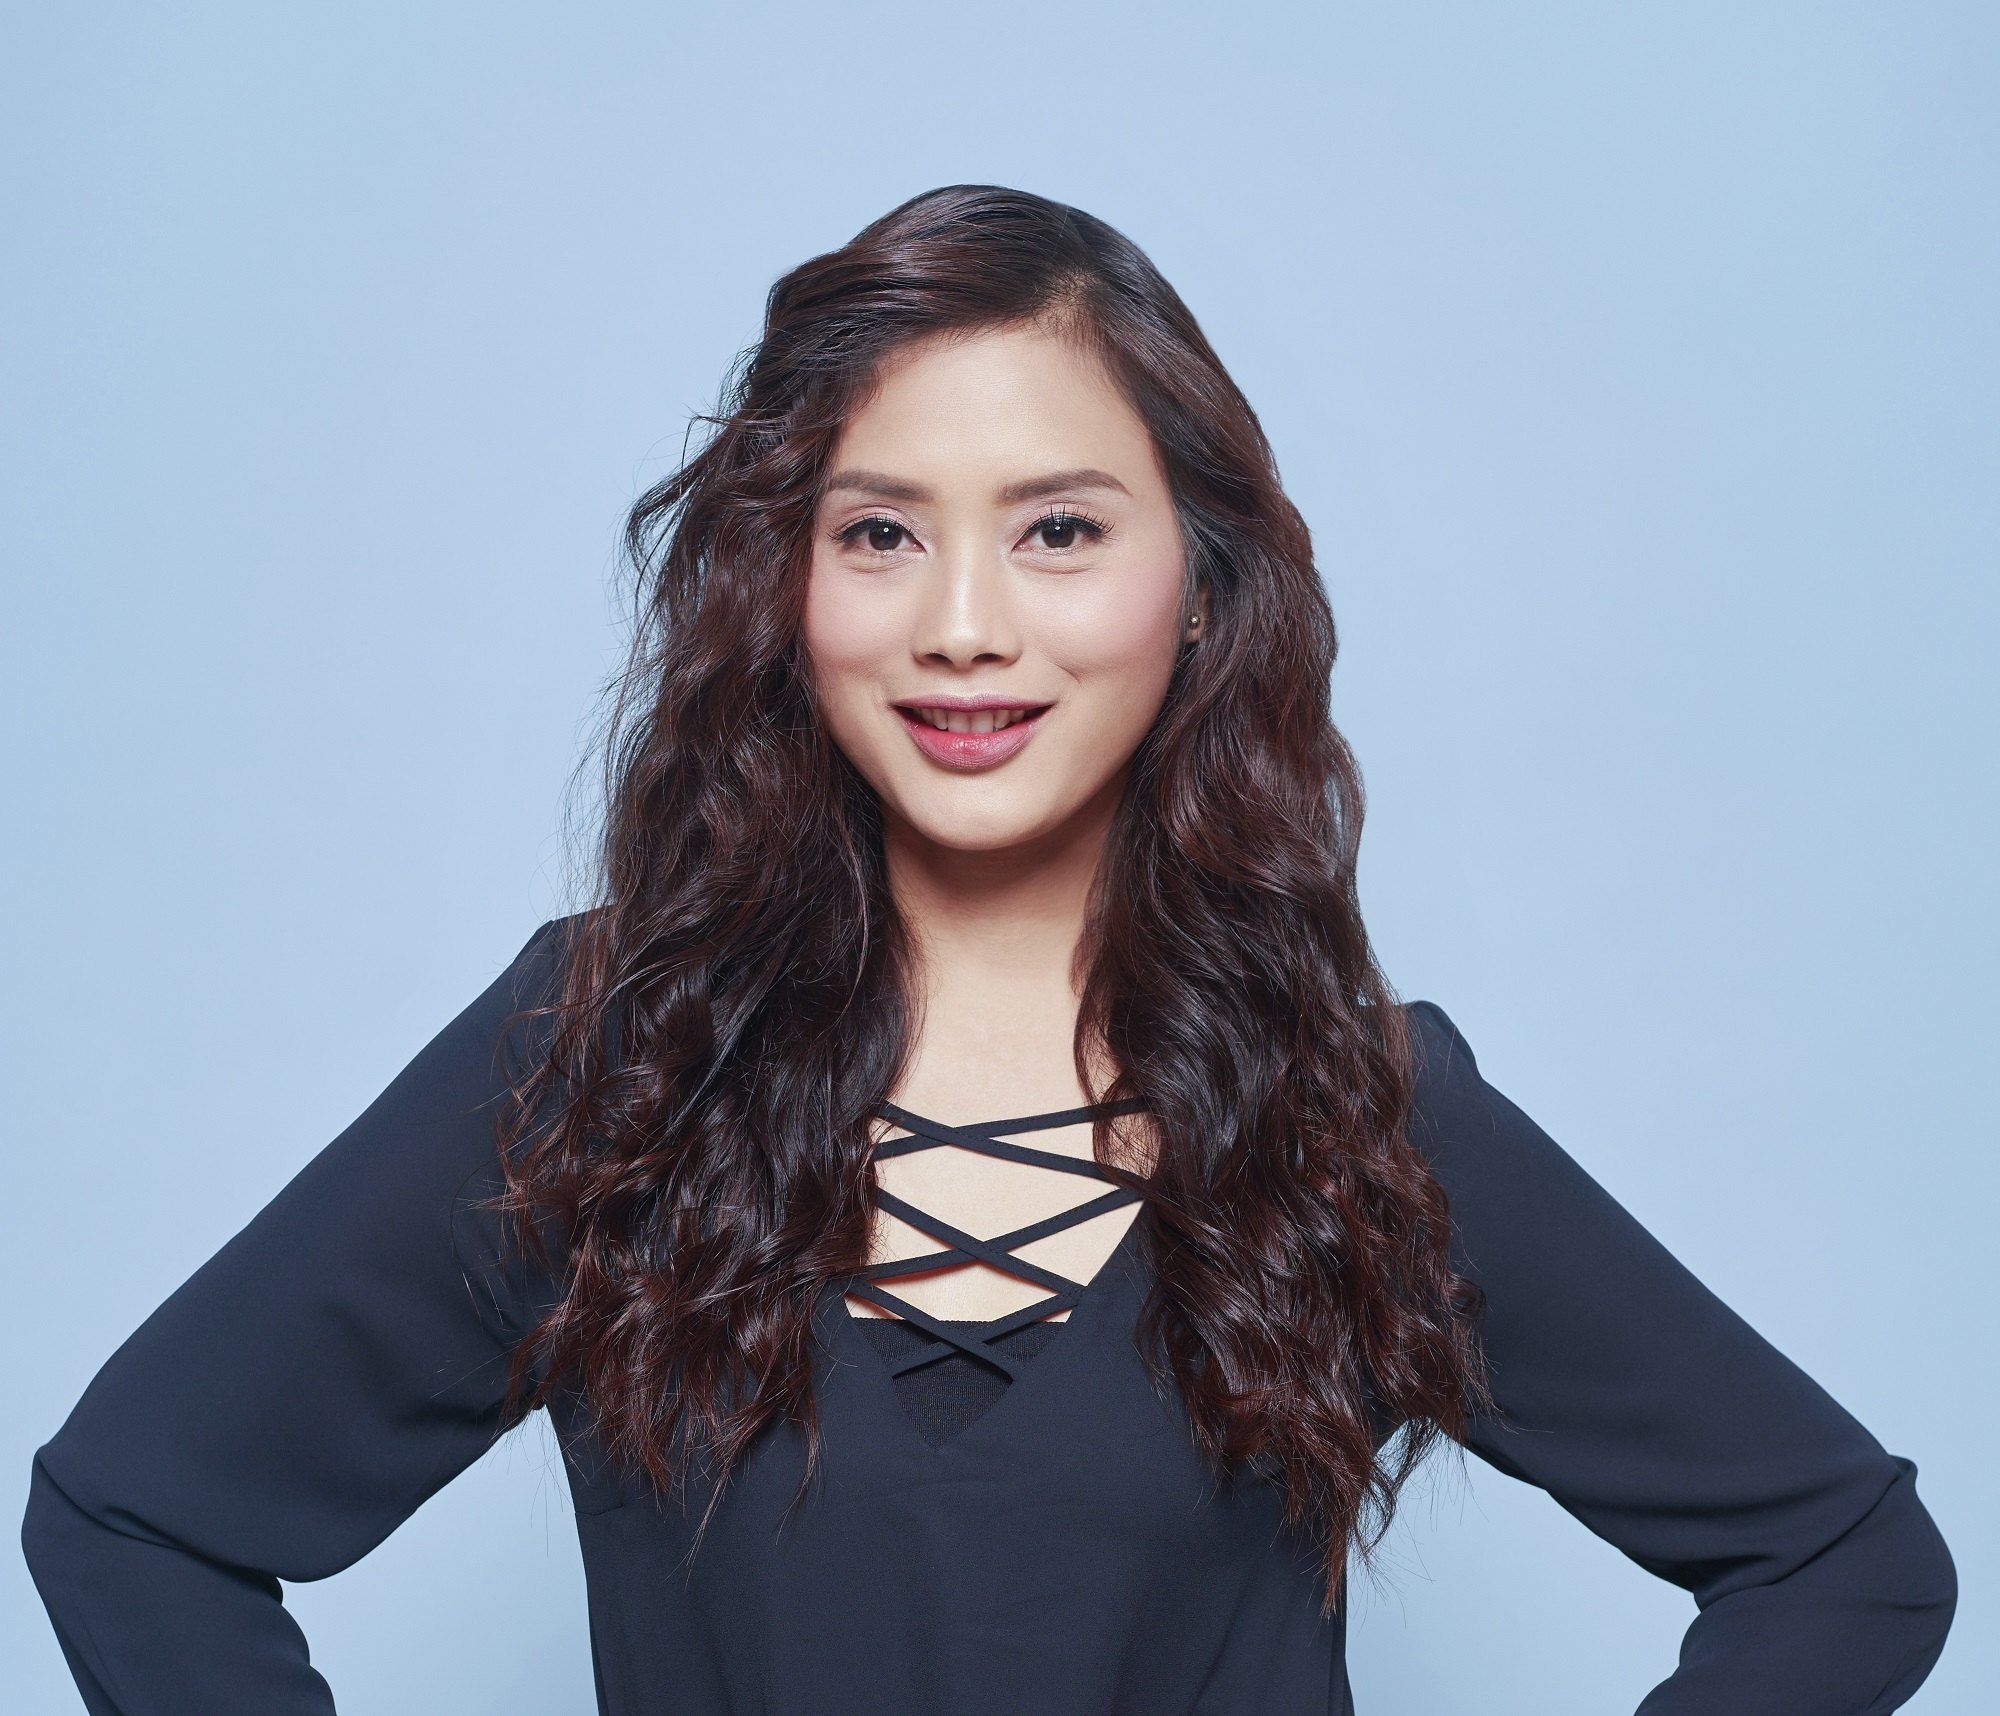 Long wavy hair: Asian woman with long dark wavy hair wearing dark blue long sleeves against a blue backdrop